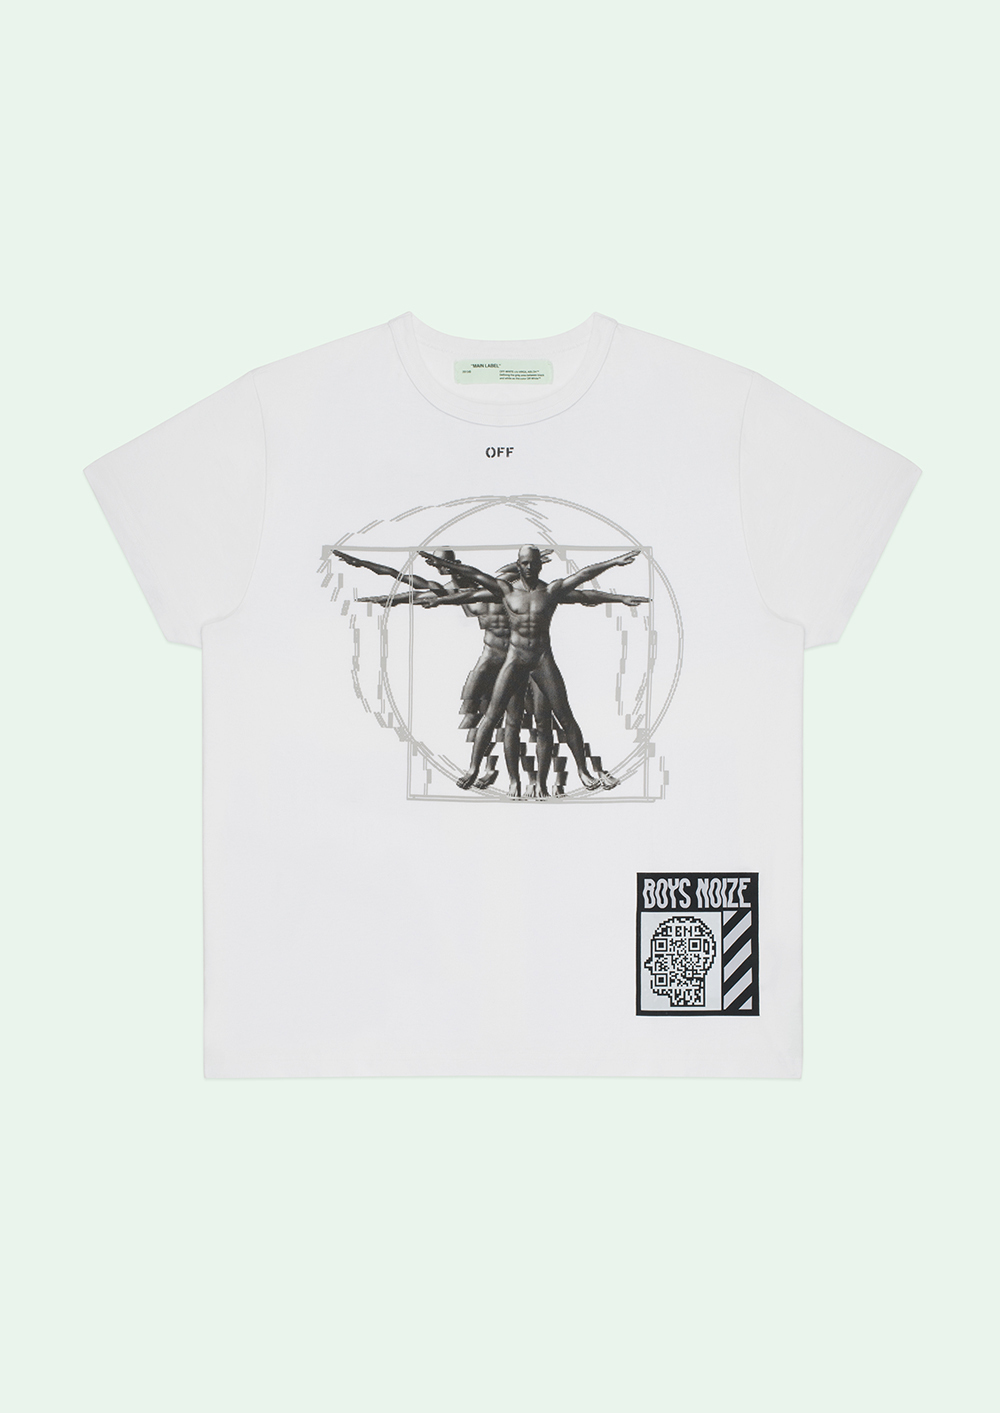 Off-White(オフホワイト)☆BOYS NOIZE X MAY DAY T-SHIRT☆